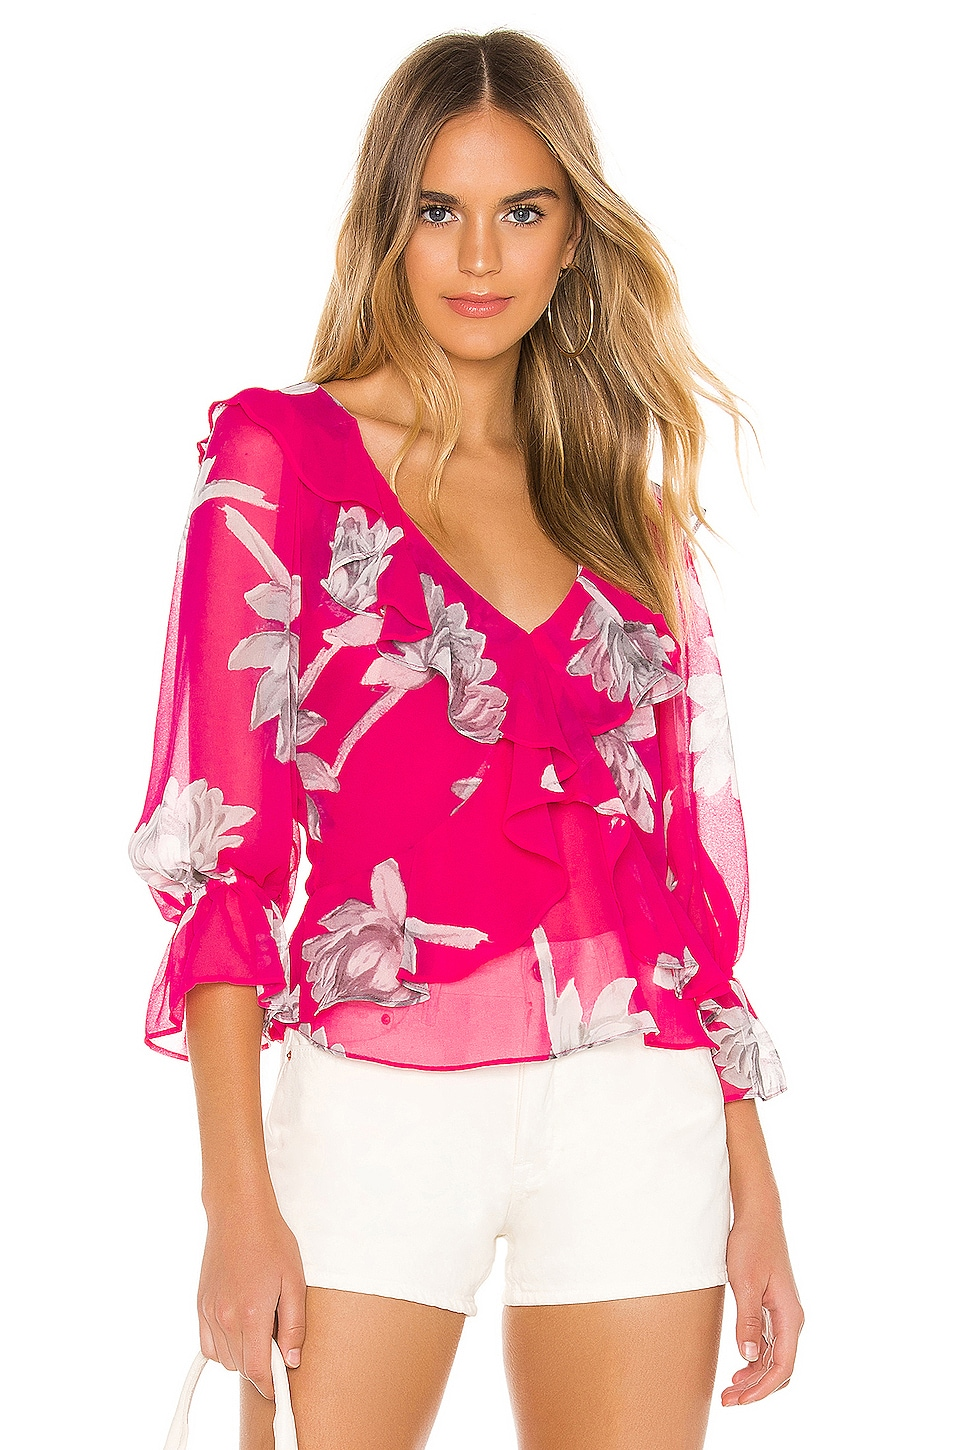 MISA Los Angeles X REVOLVE Lilyanna Top in Fuchsia Floral